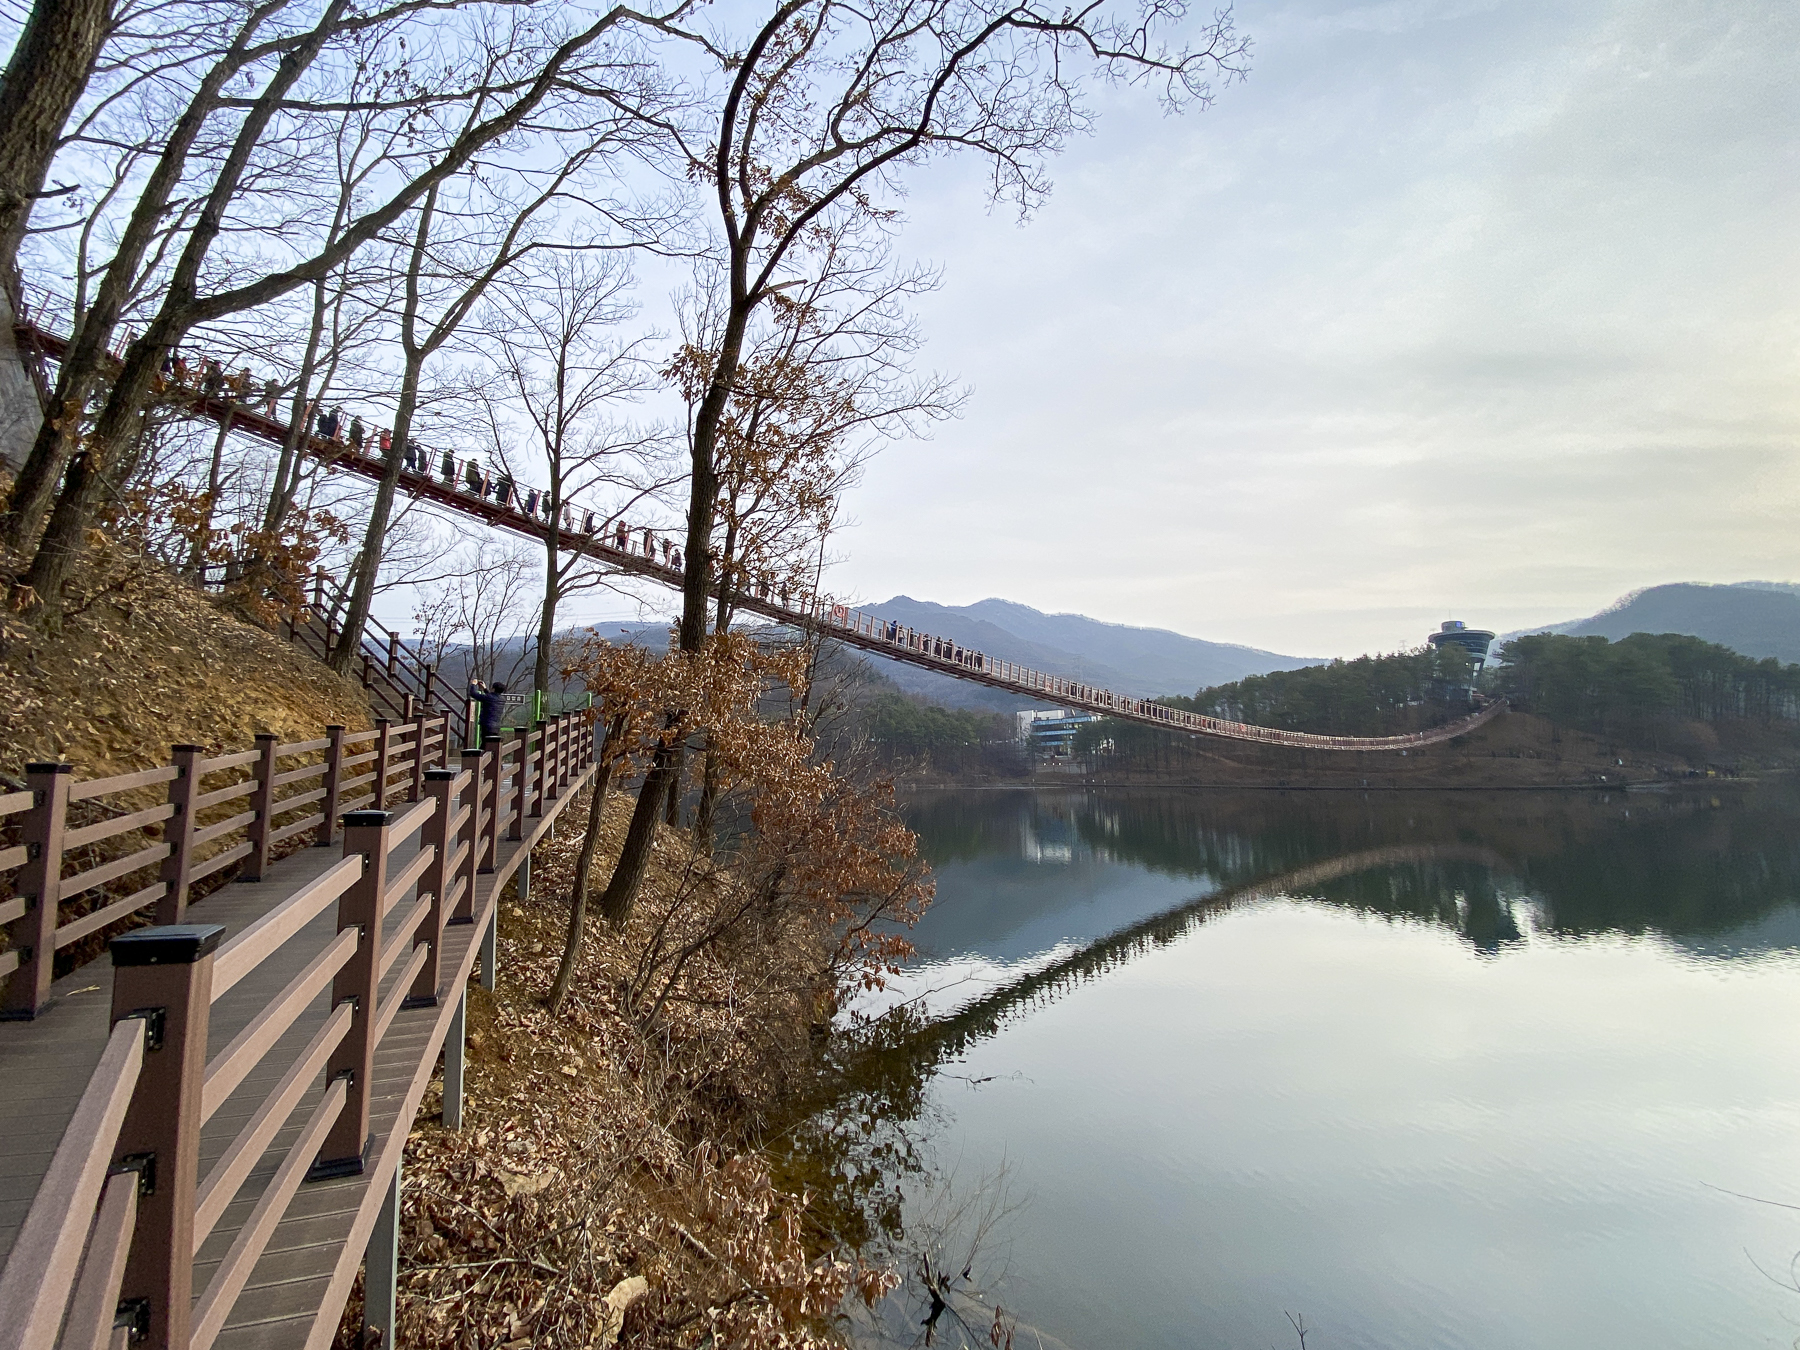 walk along the well-established mountain trails